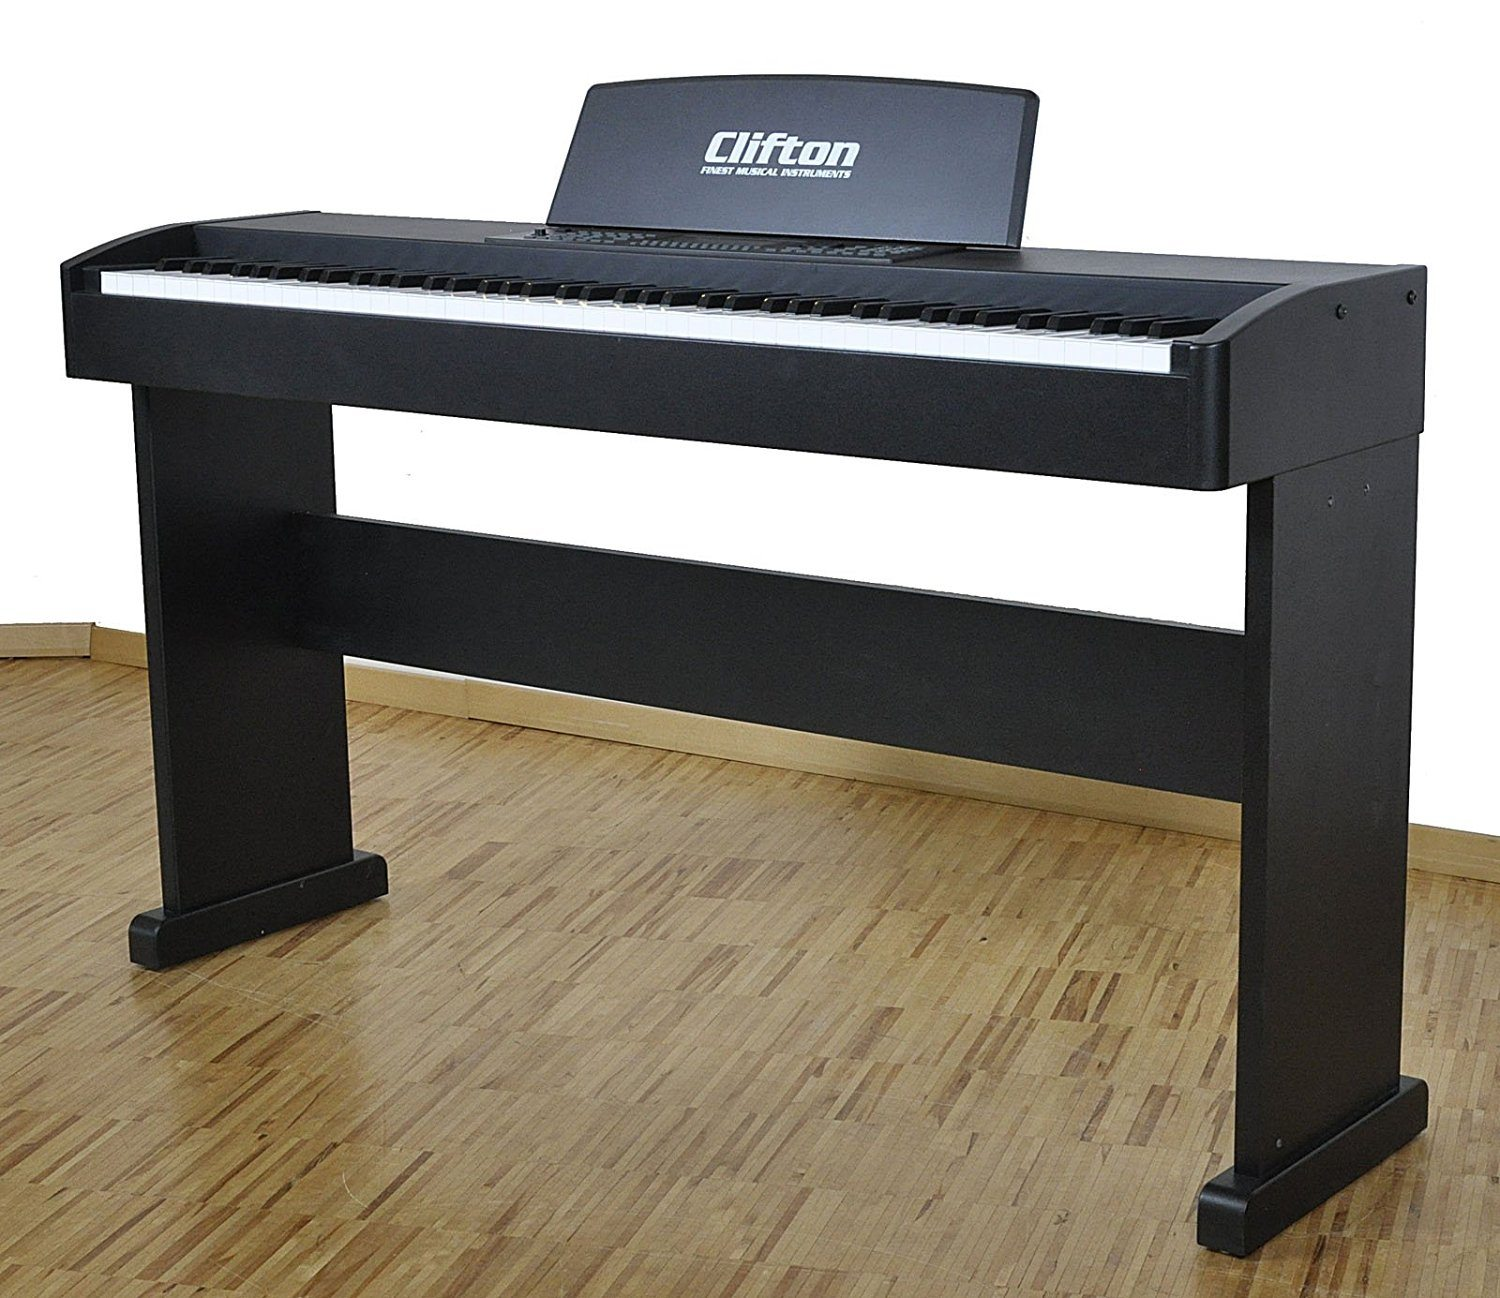 e piano test 2018 die 10 besten e pianos im vergleich. Black Bedroom Furniture Sets. Home Design Ideas